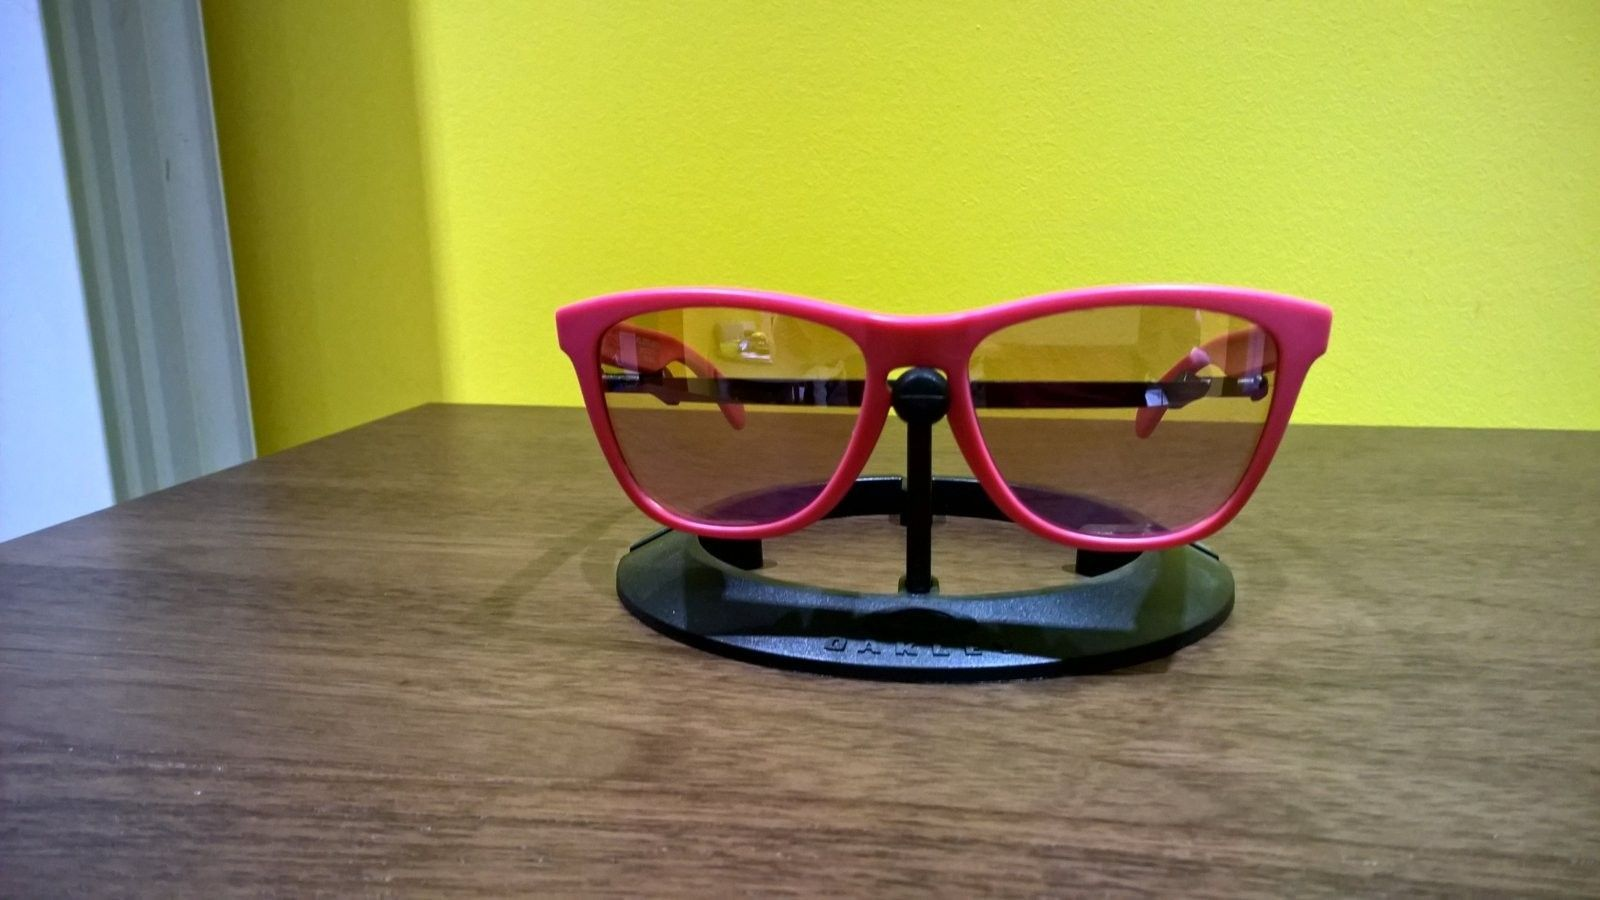 Rubberized Pink Paul Smith Frogskins Price Drop - WP_20151105_20_16_19_Pro.jpg